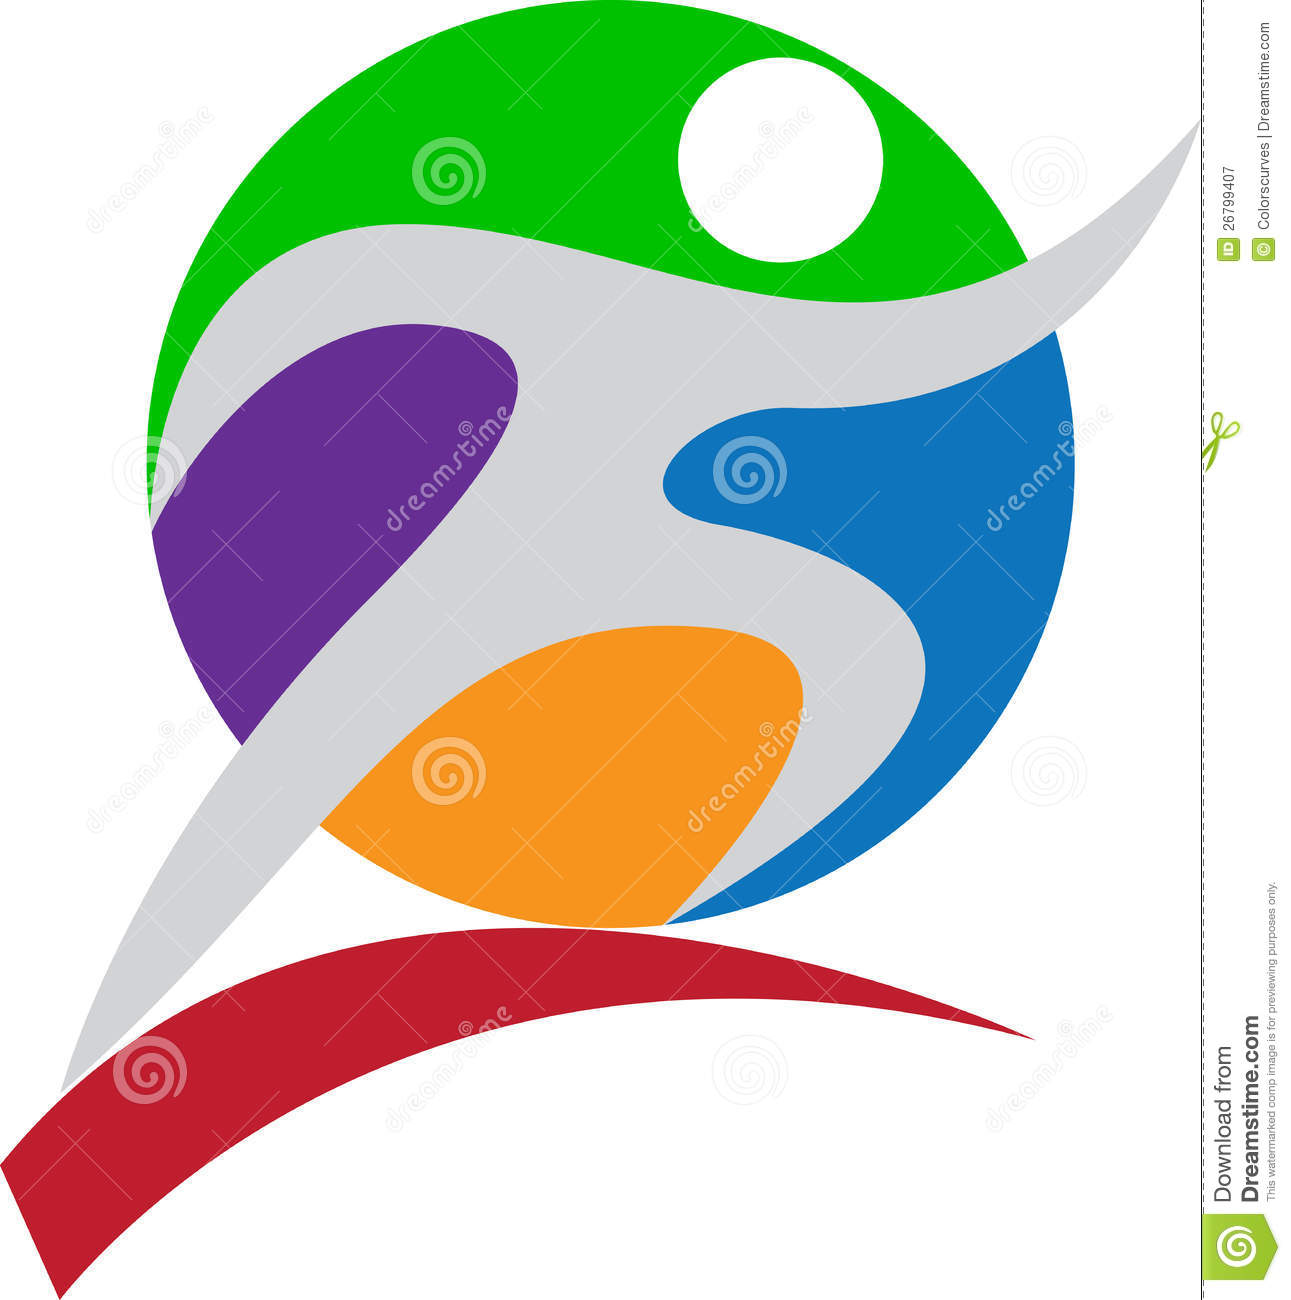 Swell Sports Logo Royalty Free Stock Photography Image 26799407 Largest Home Design Picture Inspirations Pitcheantrous